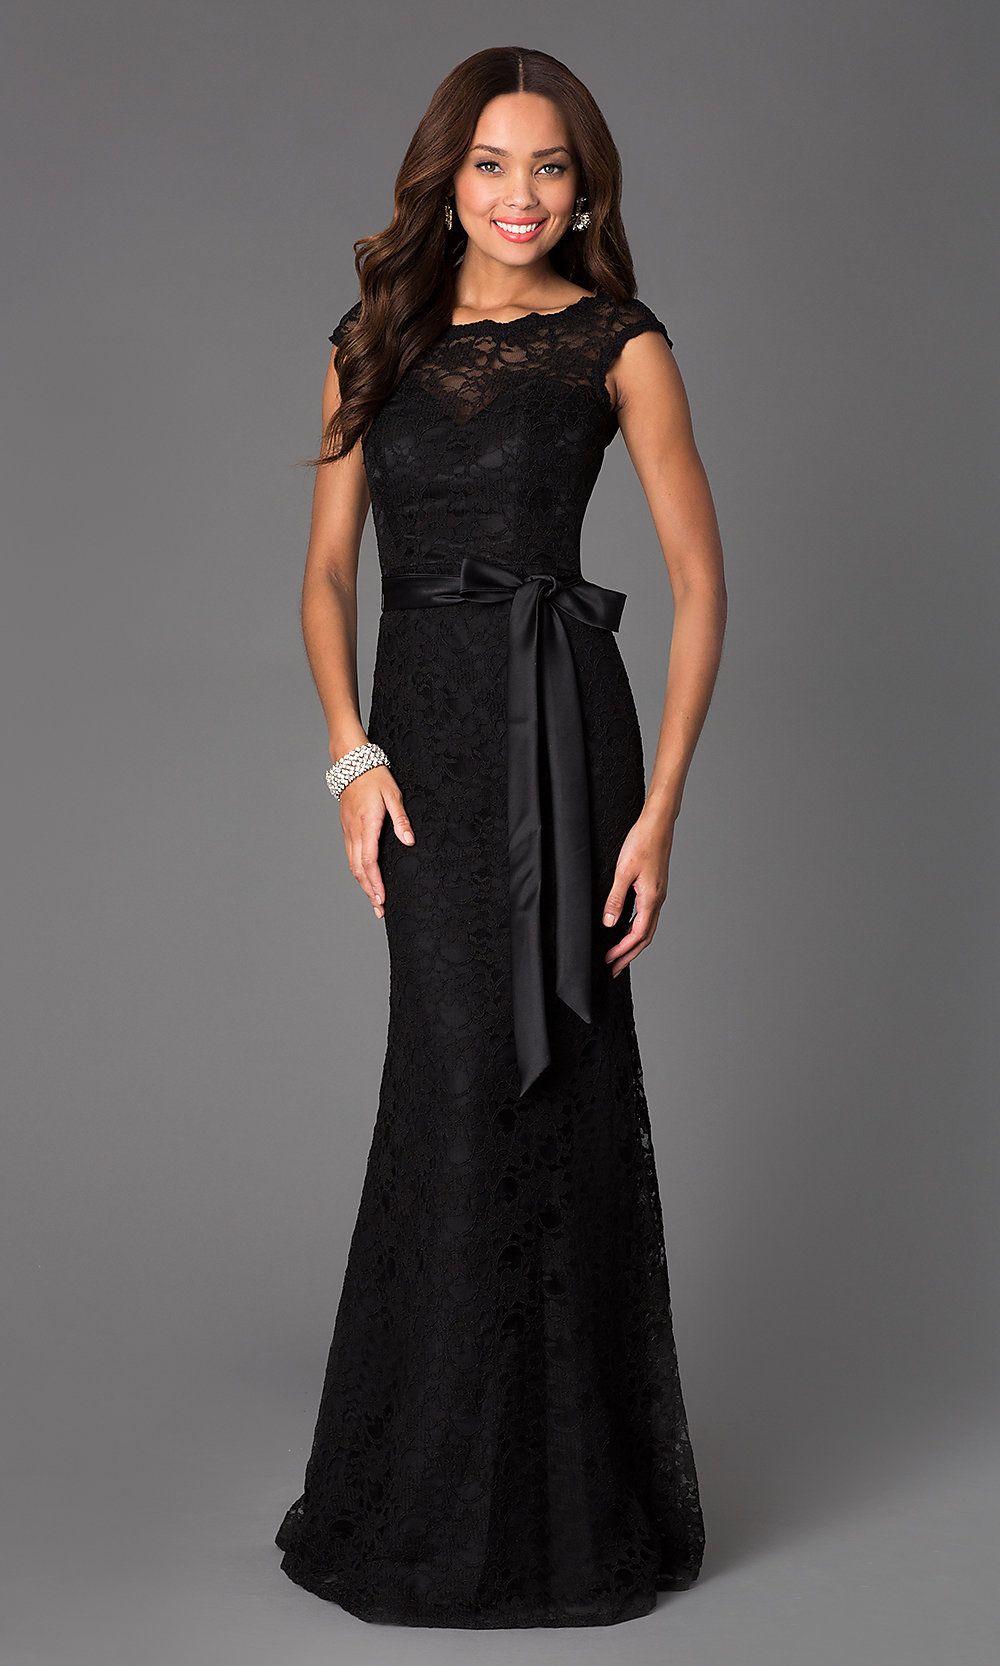 Black Lace Evening Gowns, Mori Lee Black Prom Dresses- PromGirl